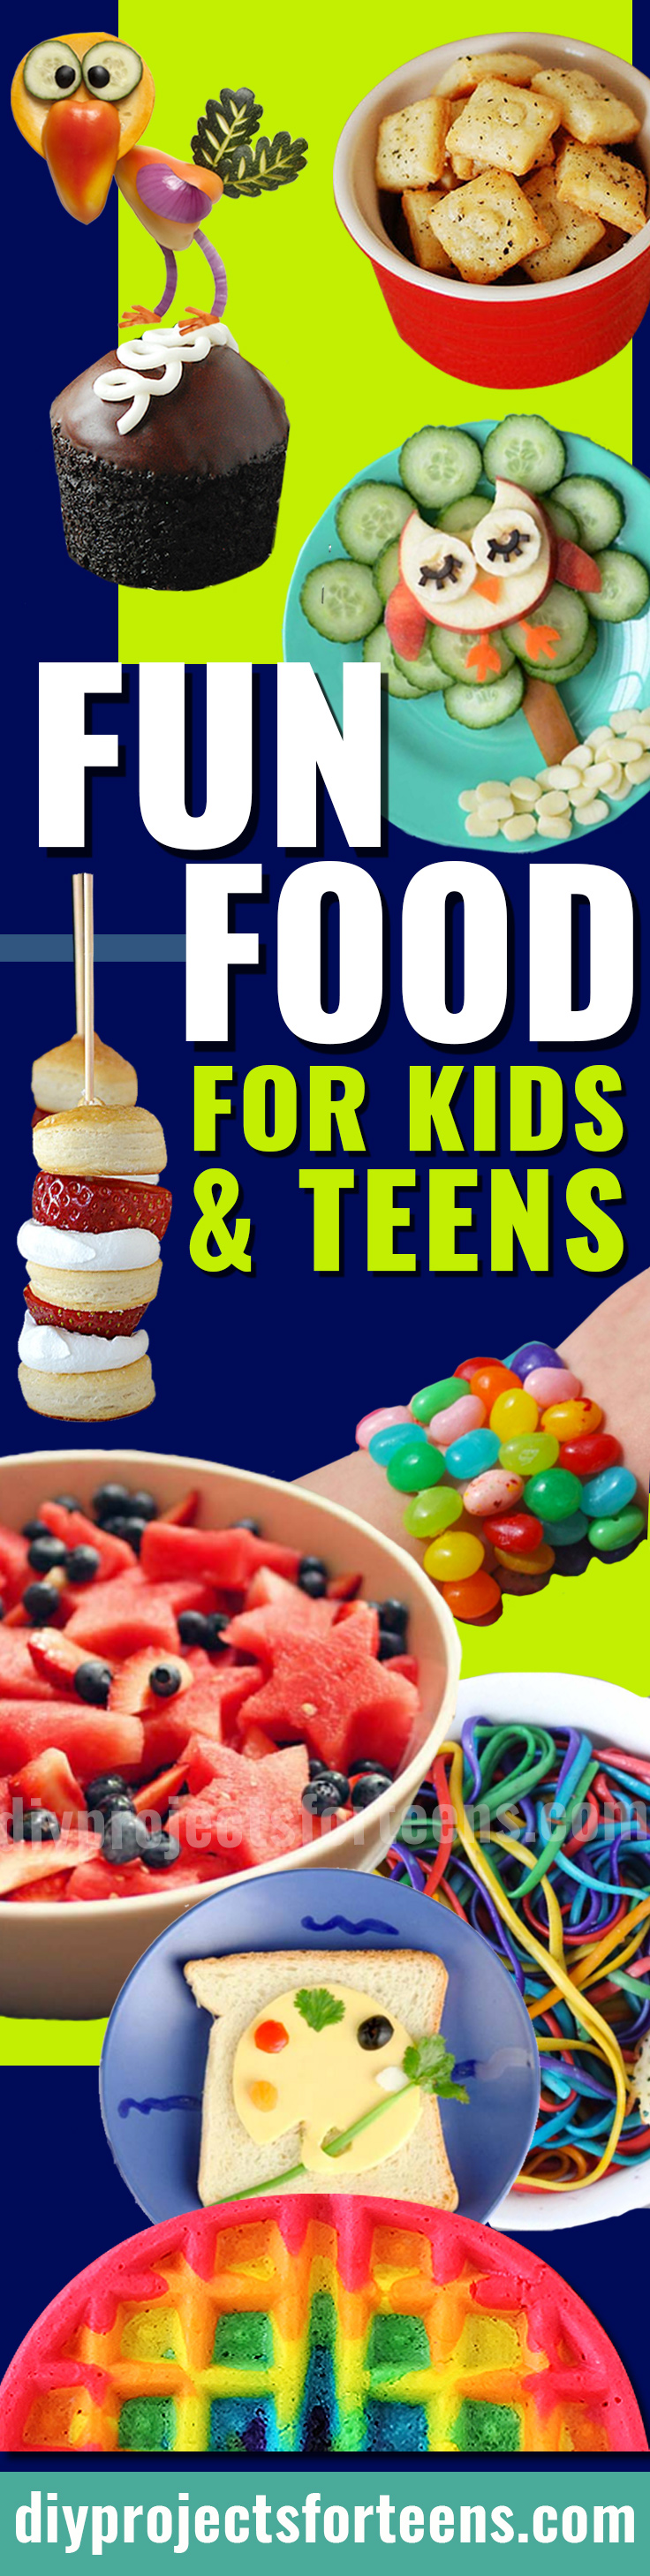 34 Fun Foods For Kids And Teens-6194